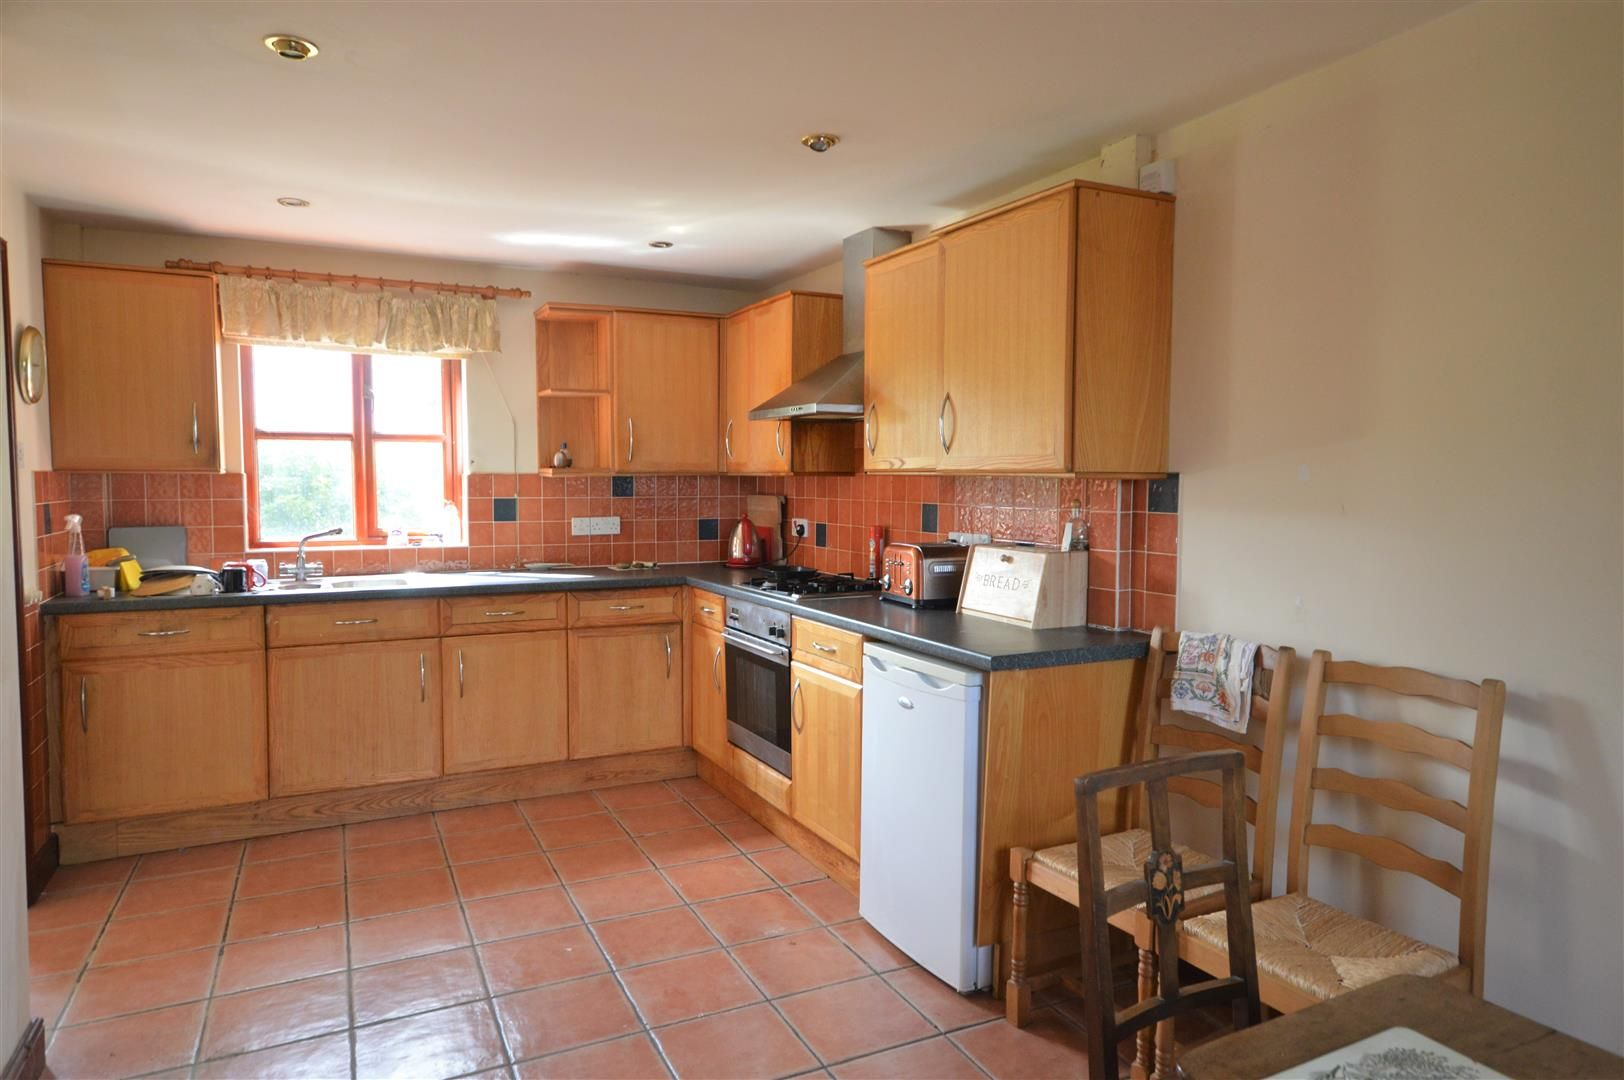 4 bed detached for sale in Bodenham  - Property Image 3